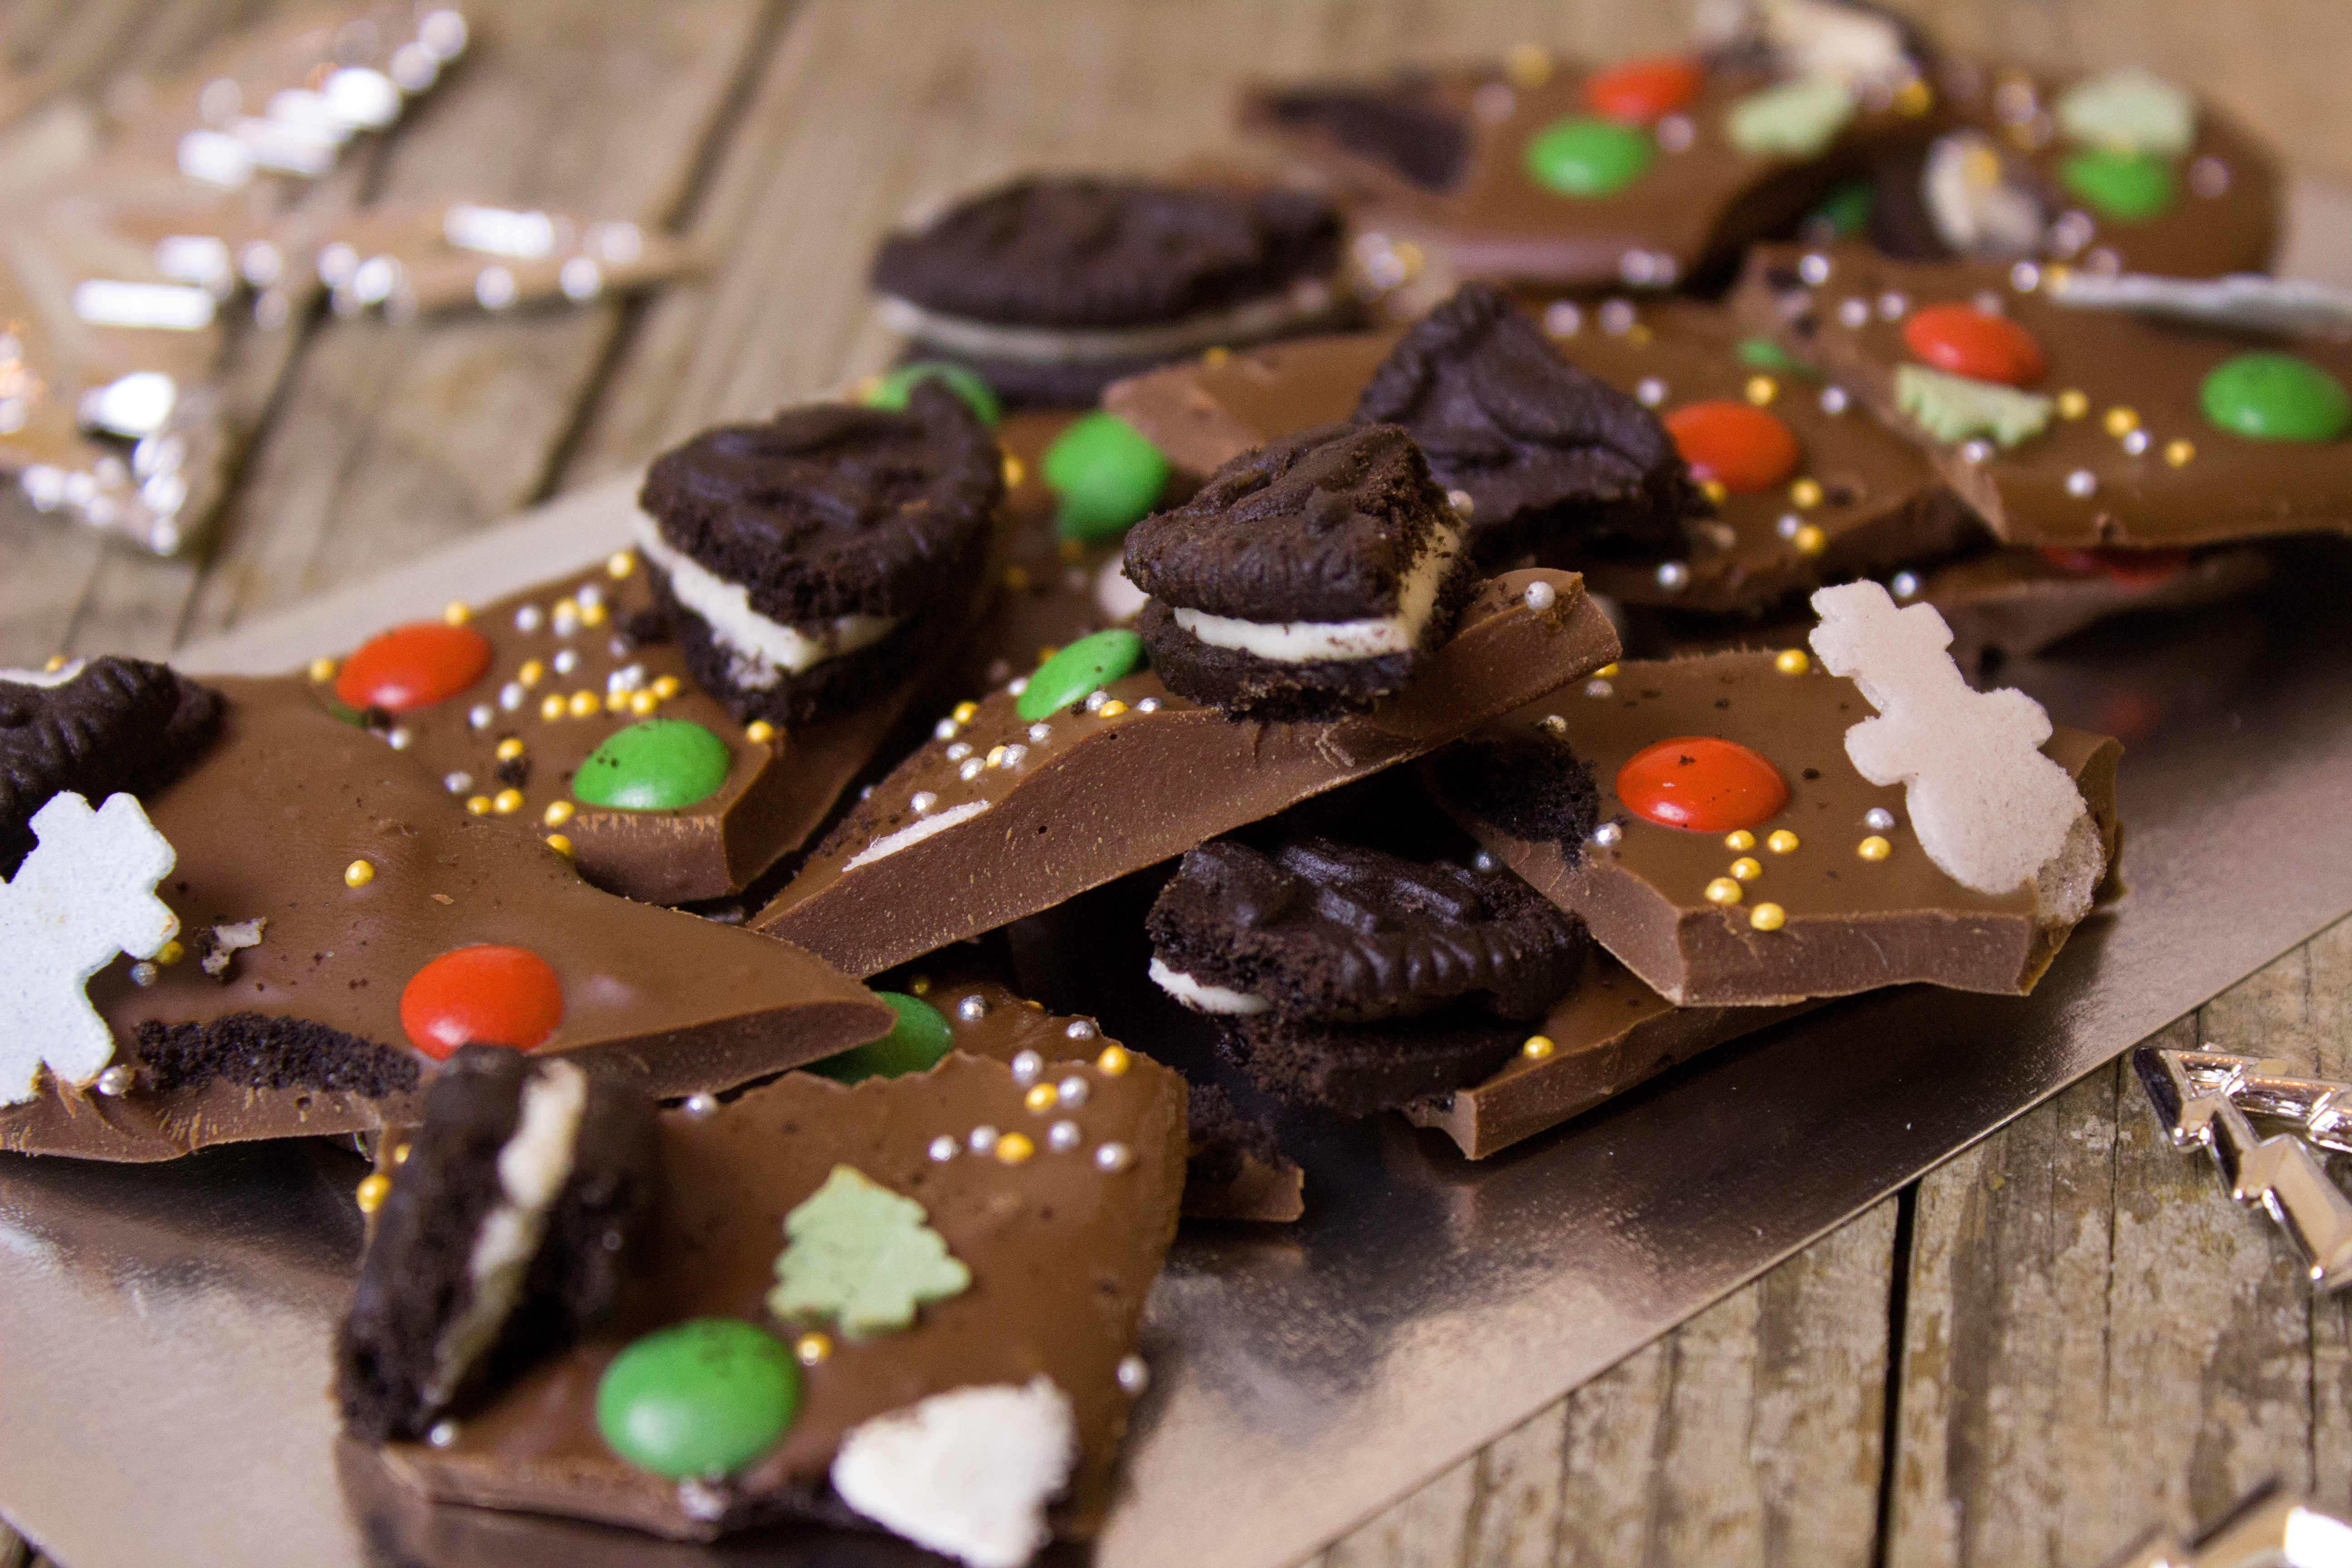 sweet-star-gift-food-colorful-chocolate-1267169-pxhere.com